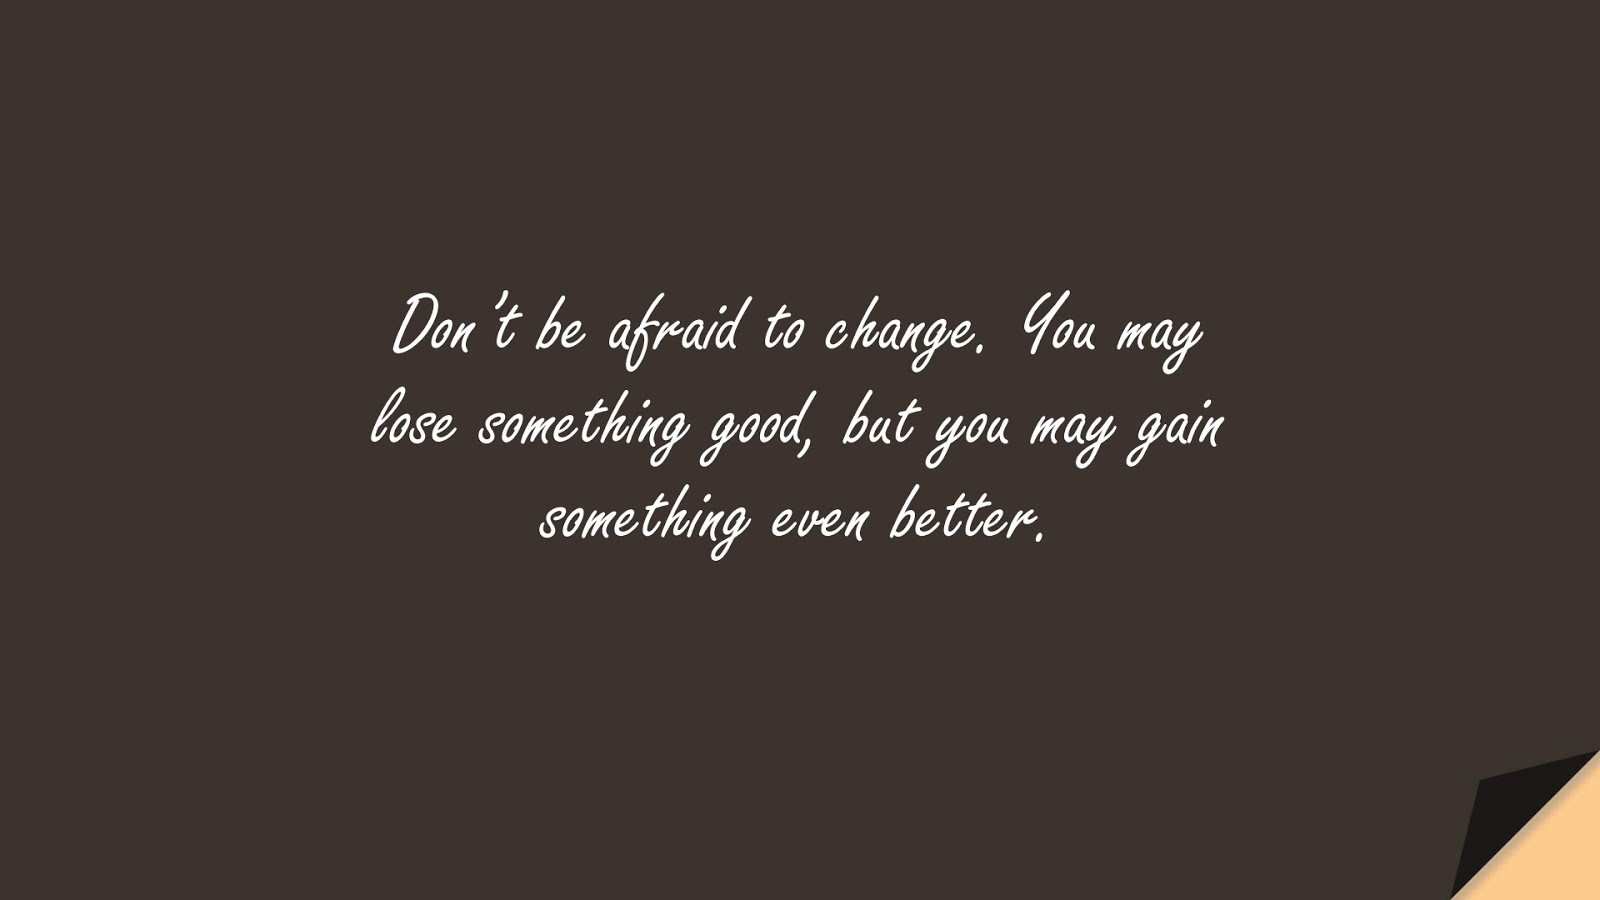 Don't be afraid to change. You may lose something good, but you may gain something even better.FALSE